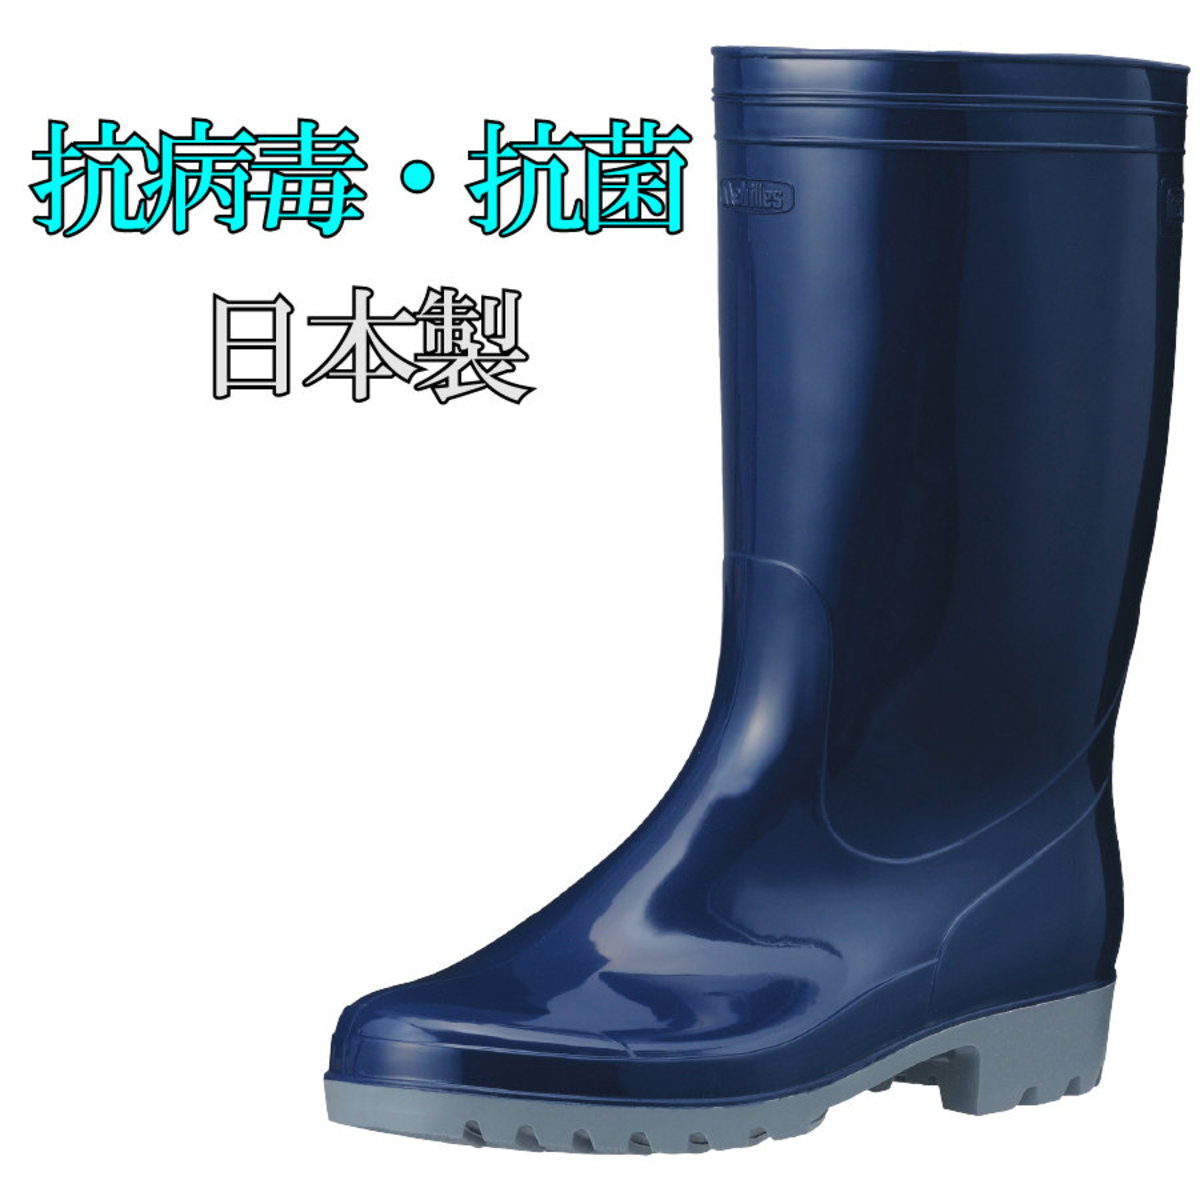 Made in Japan Anti-Viral,Anti-Bacterial PVC Boots